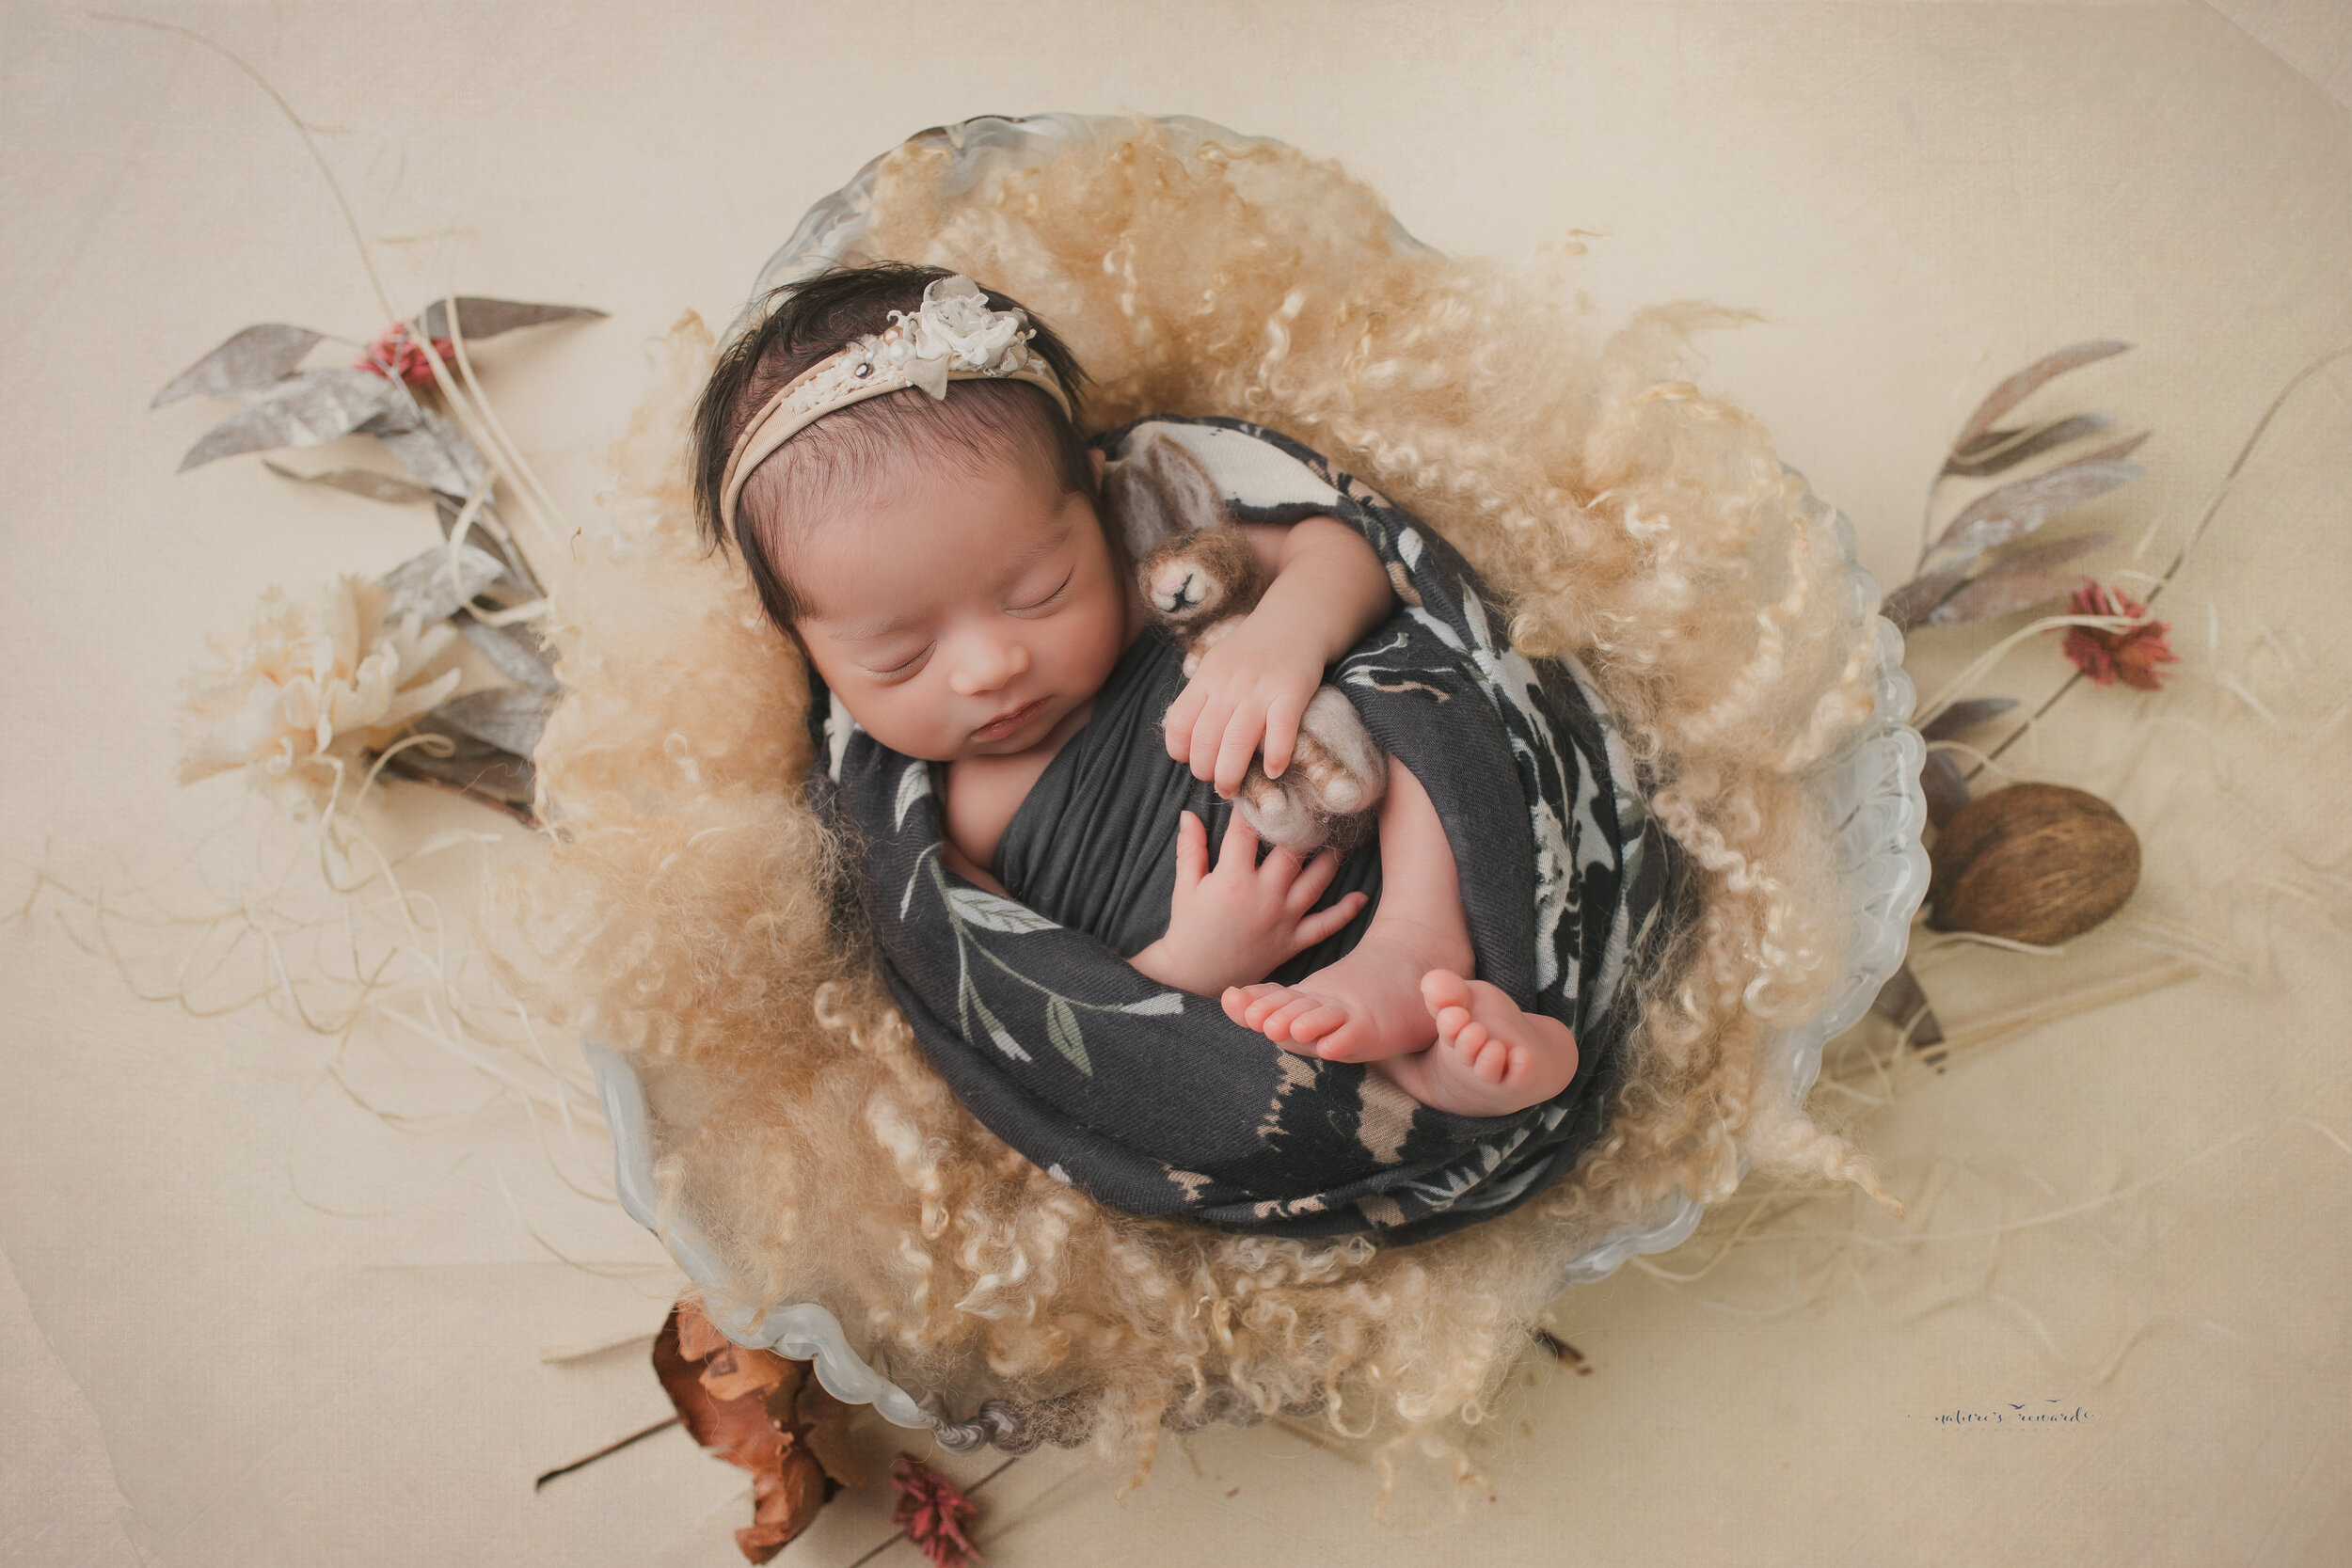 Swaddled in grey in an ivory bowl on tan backdrop, a newborn portrait by Nature's Reward Photography